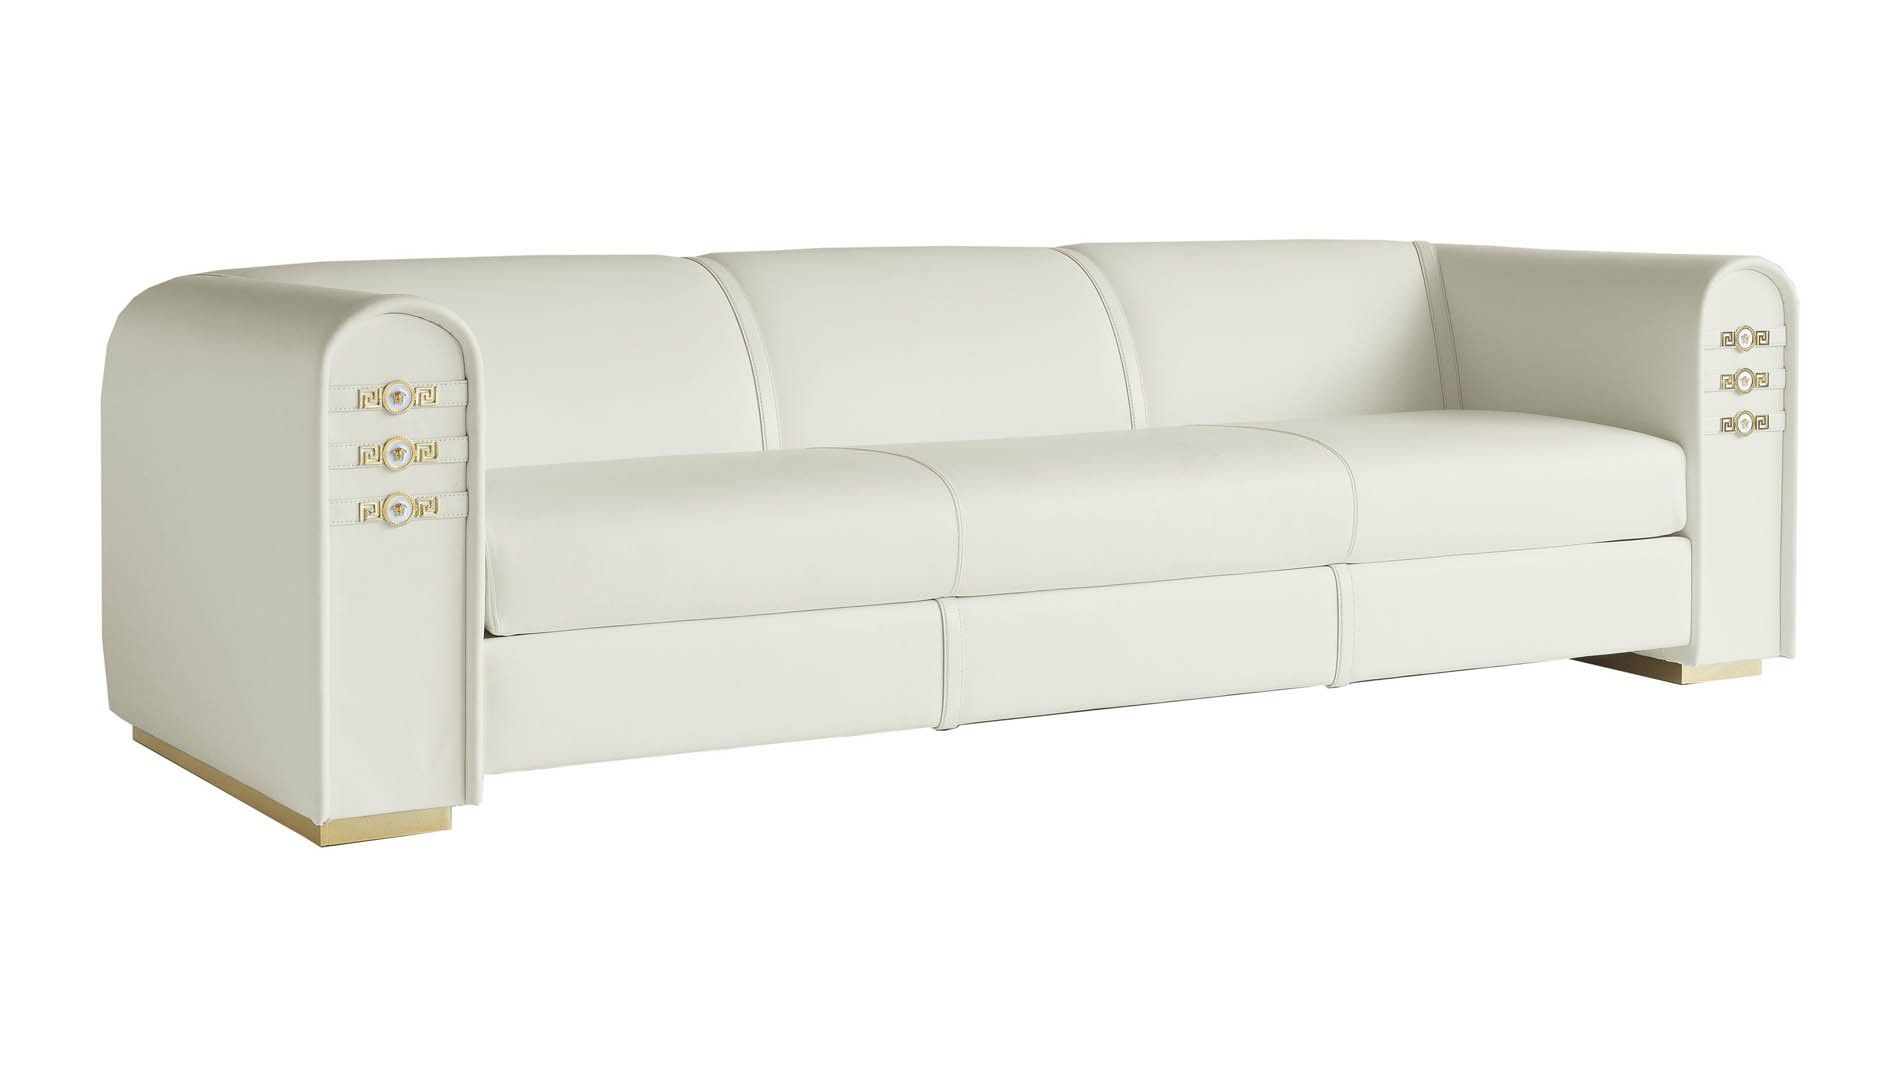 Versace Signature Sofa Teaming An All Black Colour Palette With Golden Base And